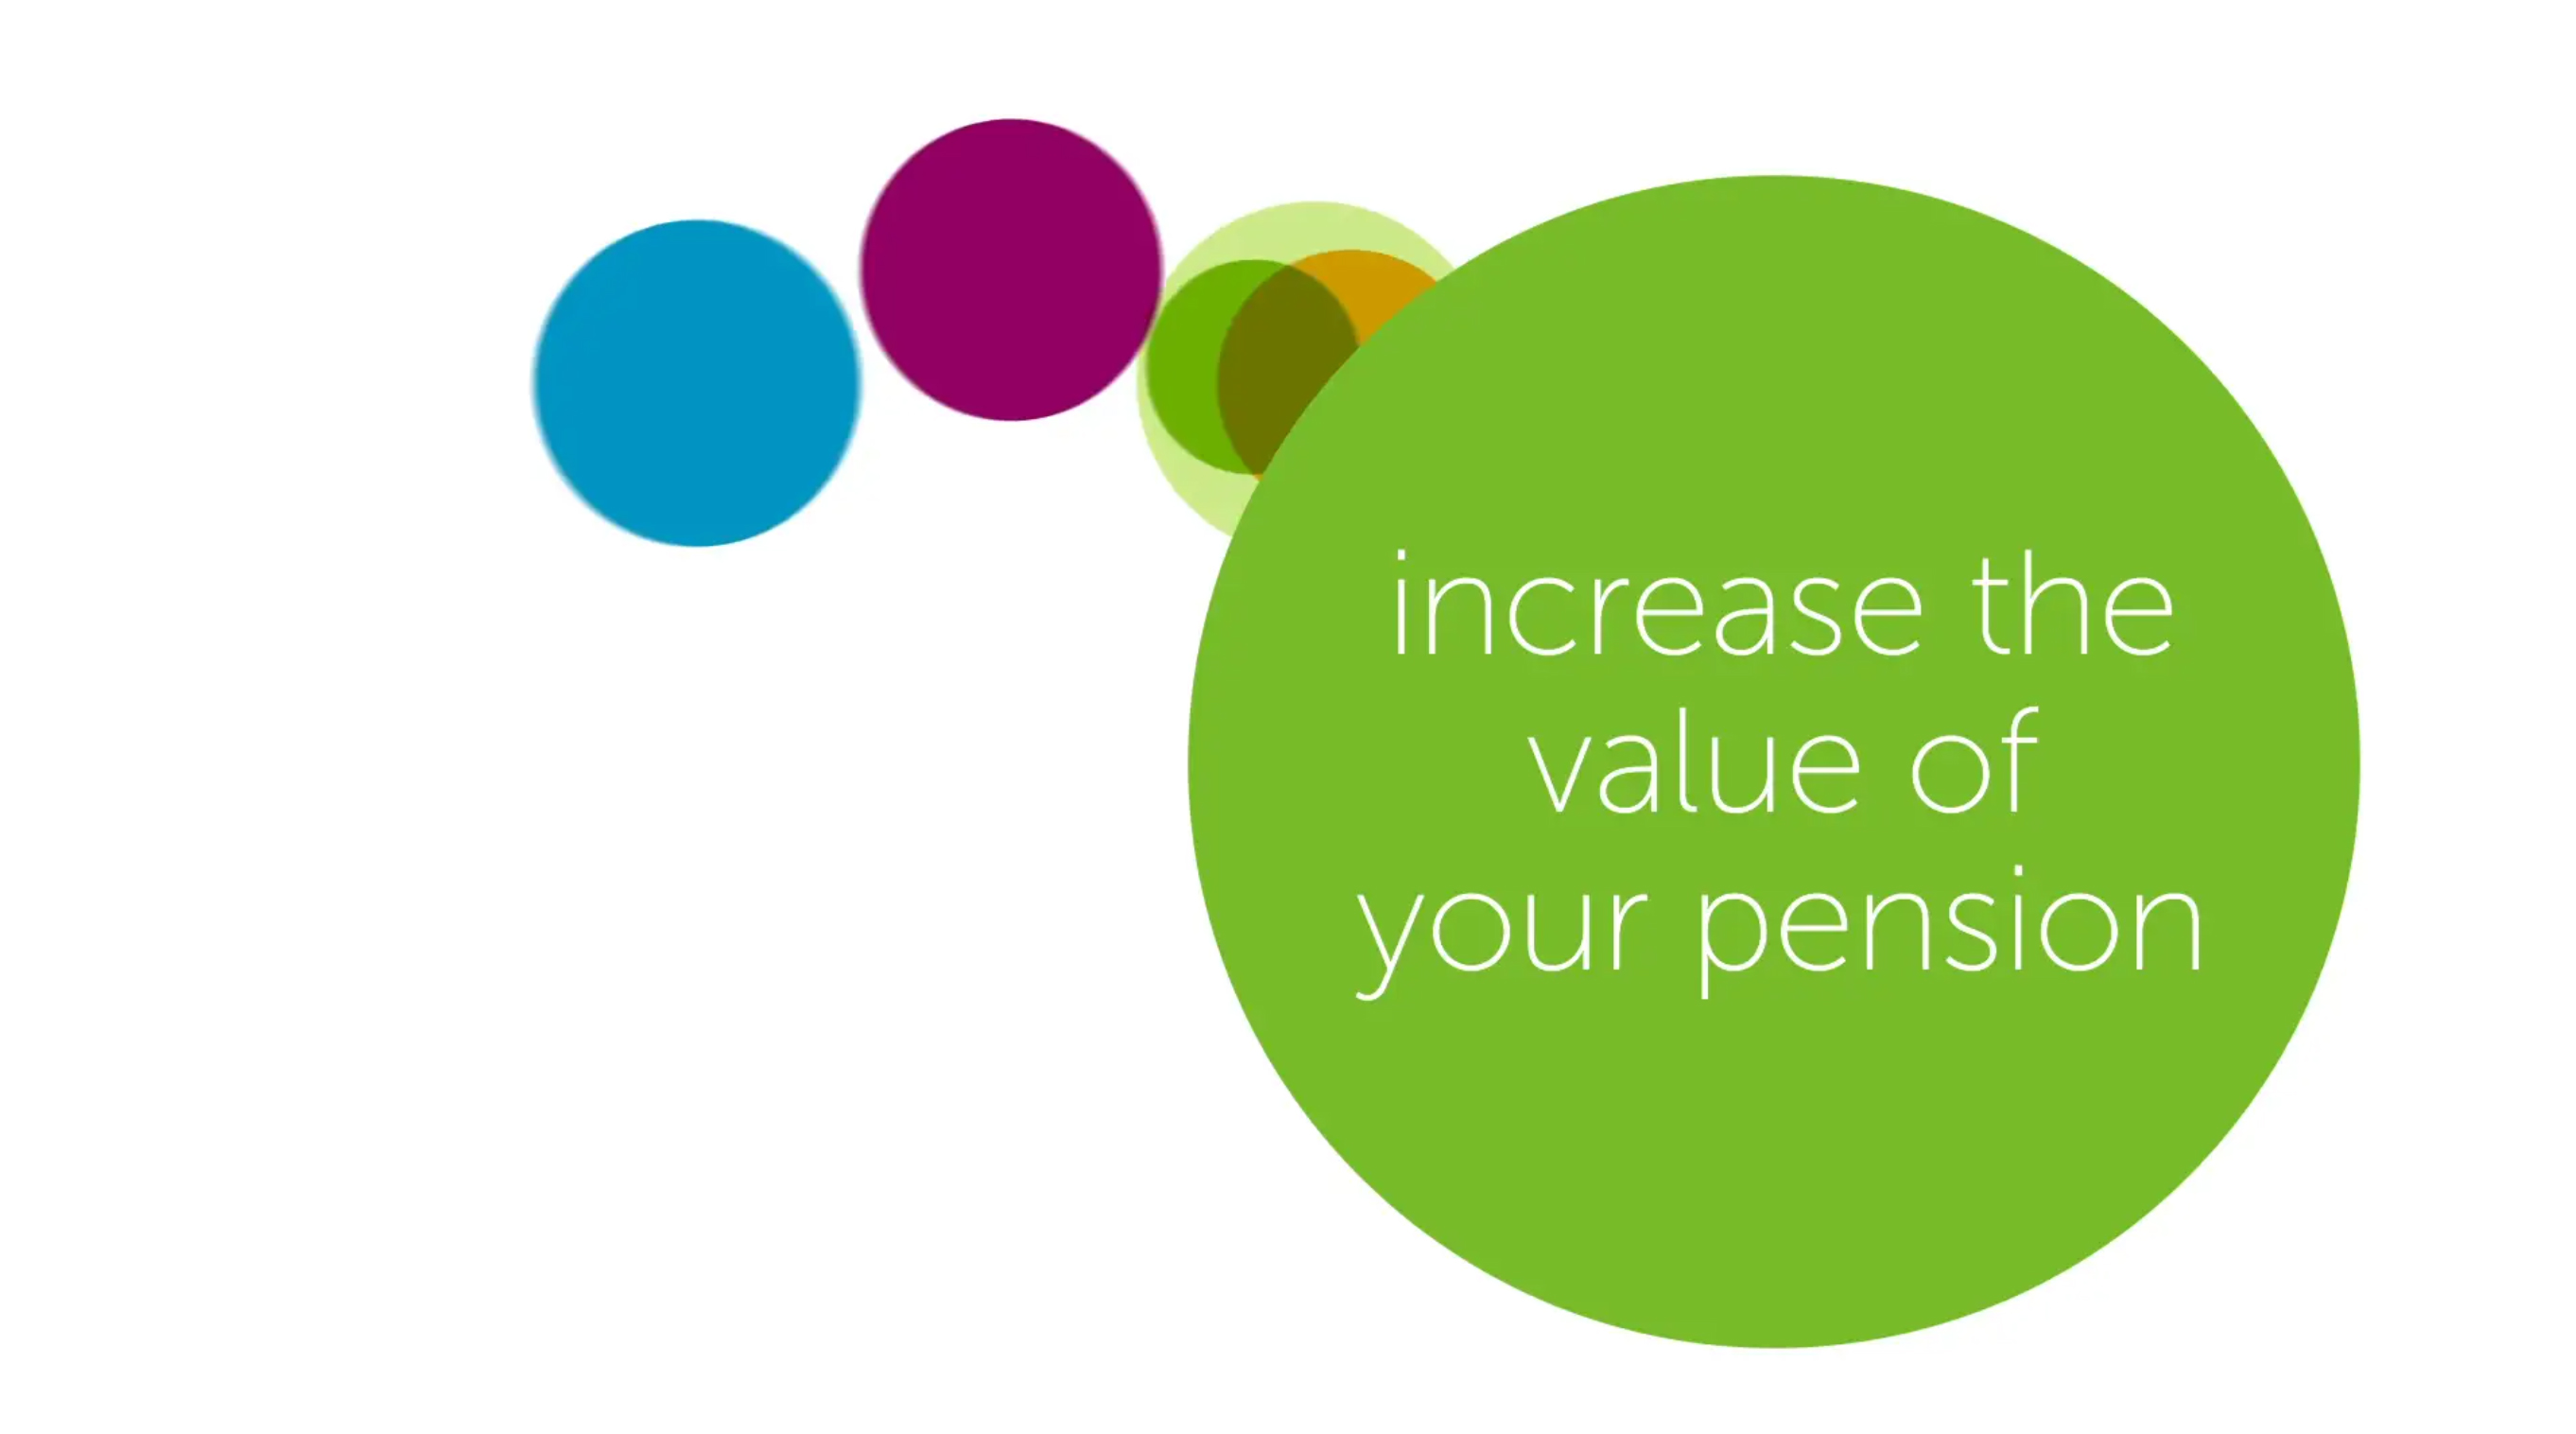 Increase the value of your pension